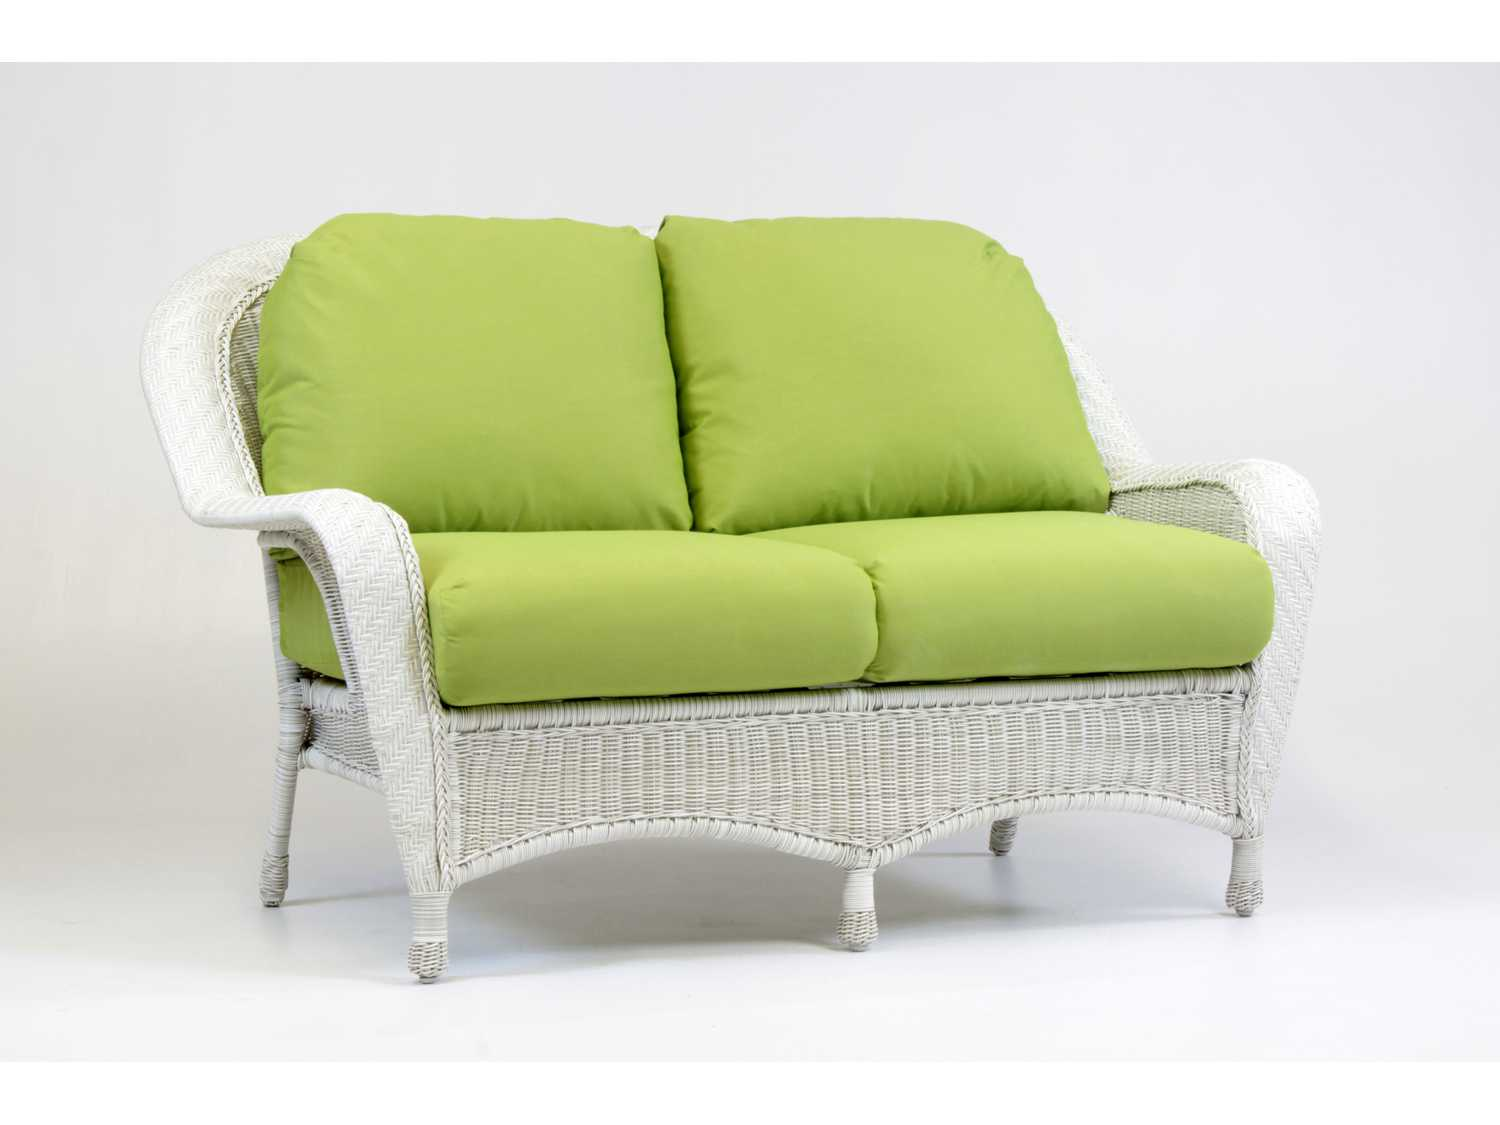 South Sea Rattan Key West Wicker Cushion Arm Loveseat 75402